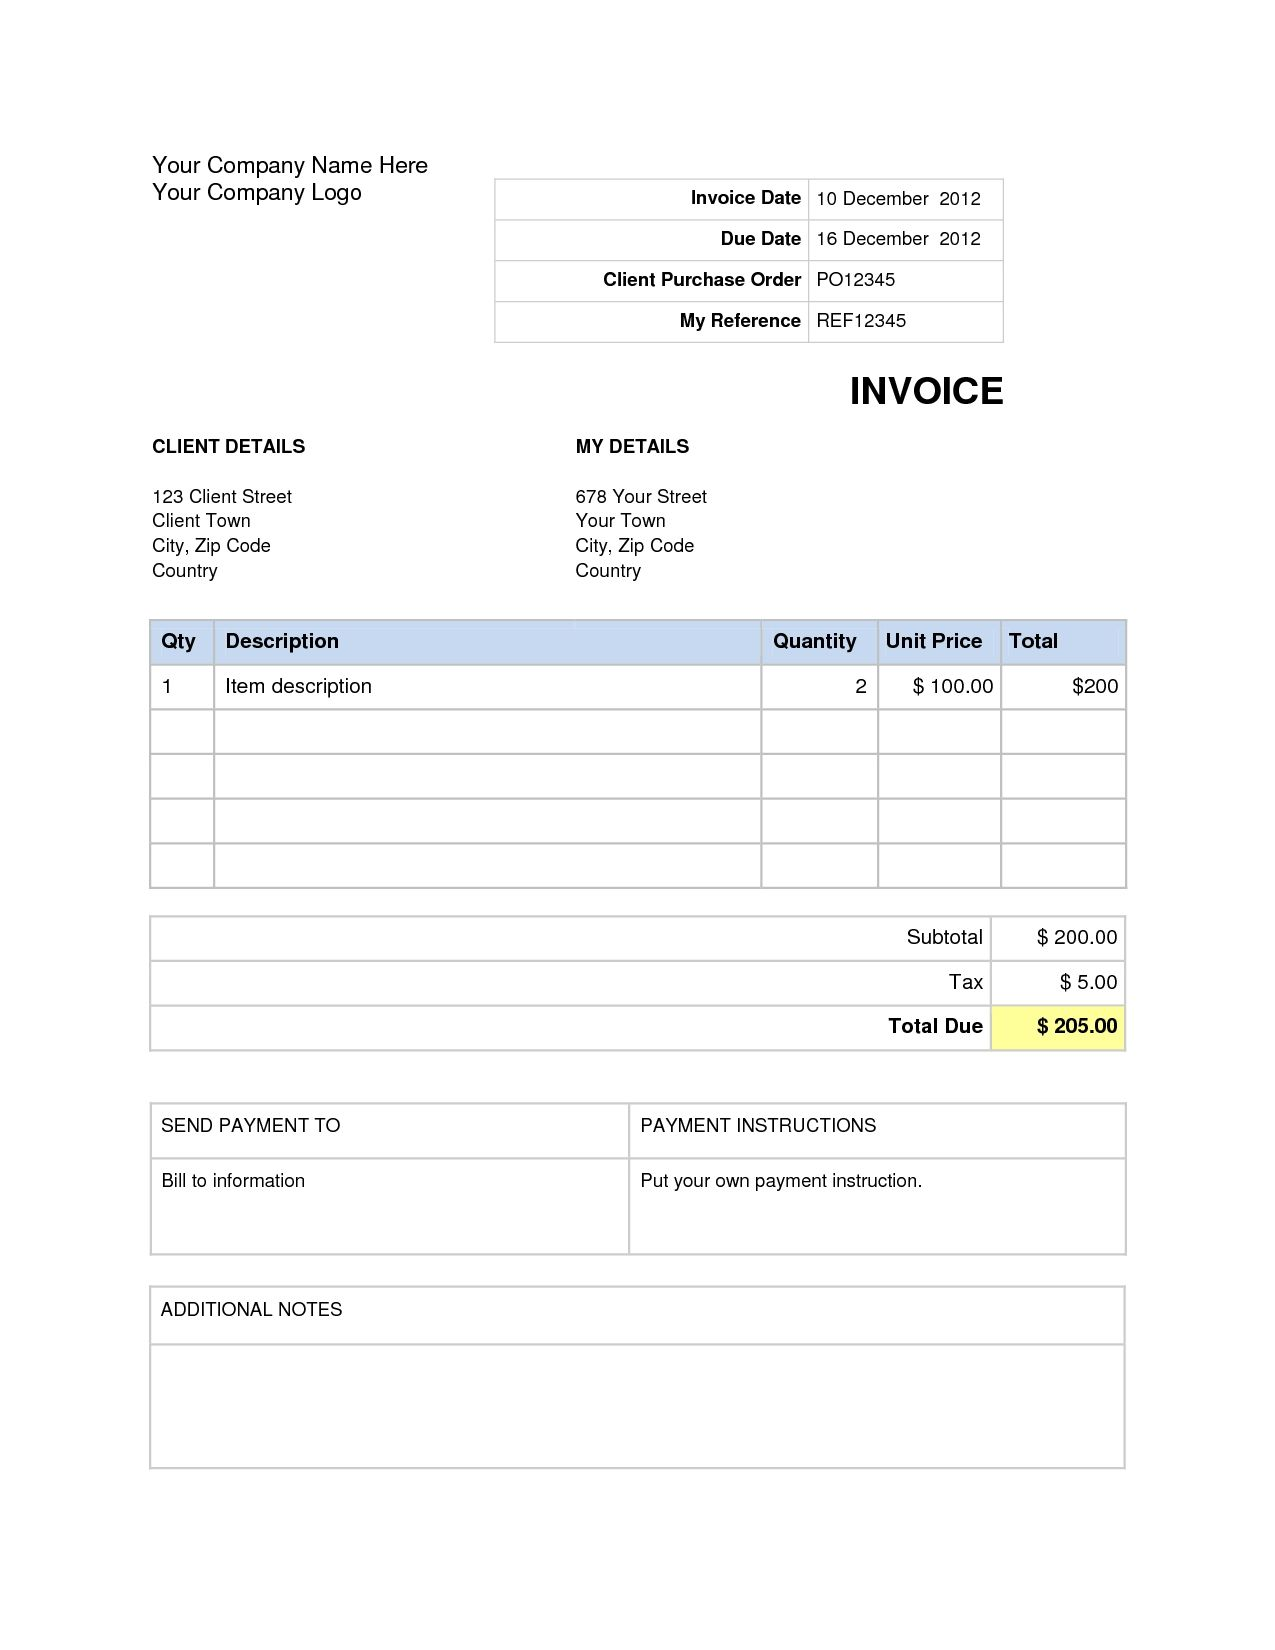 Invoice Template For Word Free Basic Invoice College Graduate Sample Resume  Examples Of A Good Essay Introduction Dental Hygiene Cover Letter Samples  Lawyer ...  Free Invoice Template Open Office